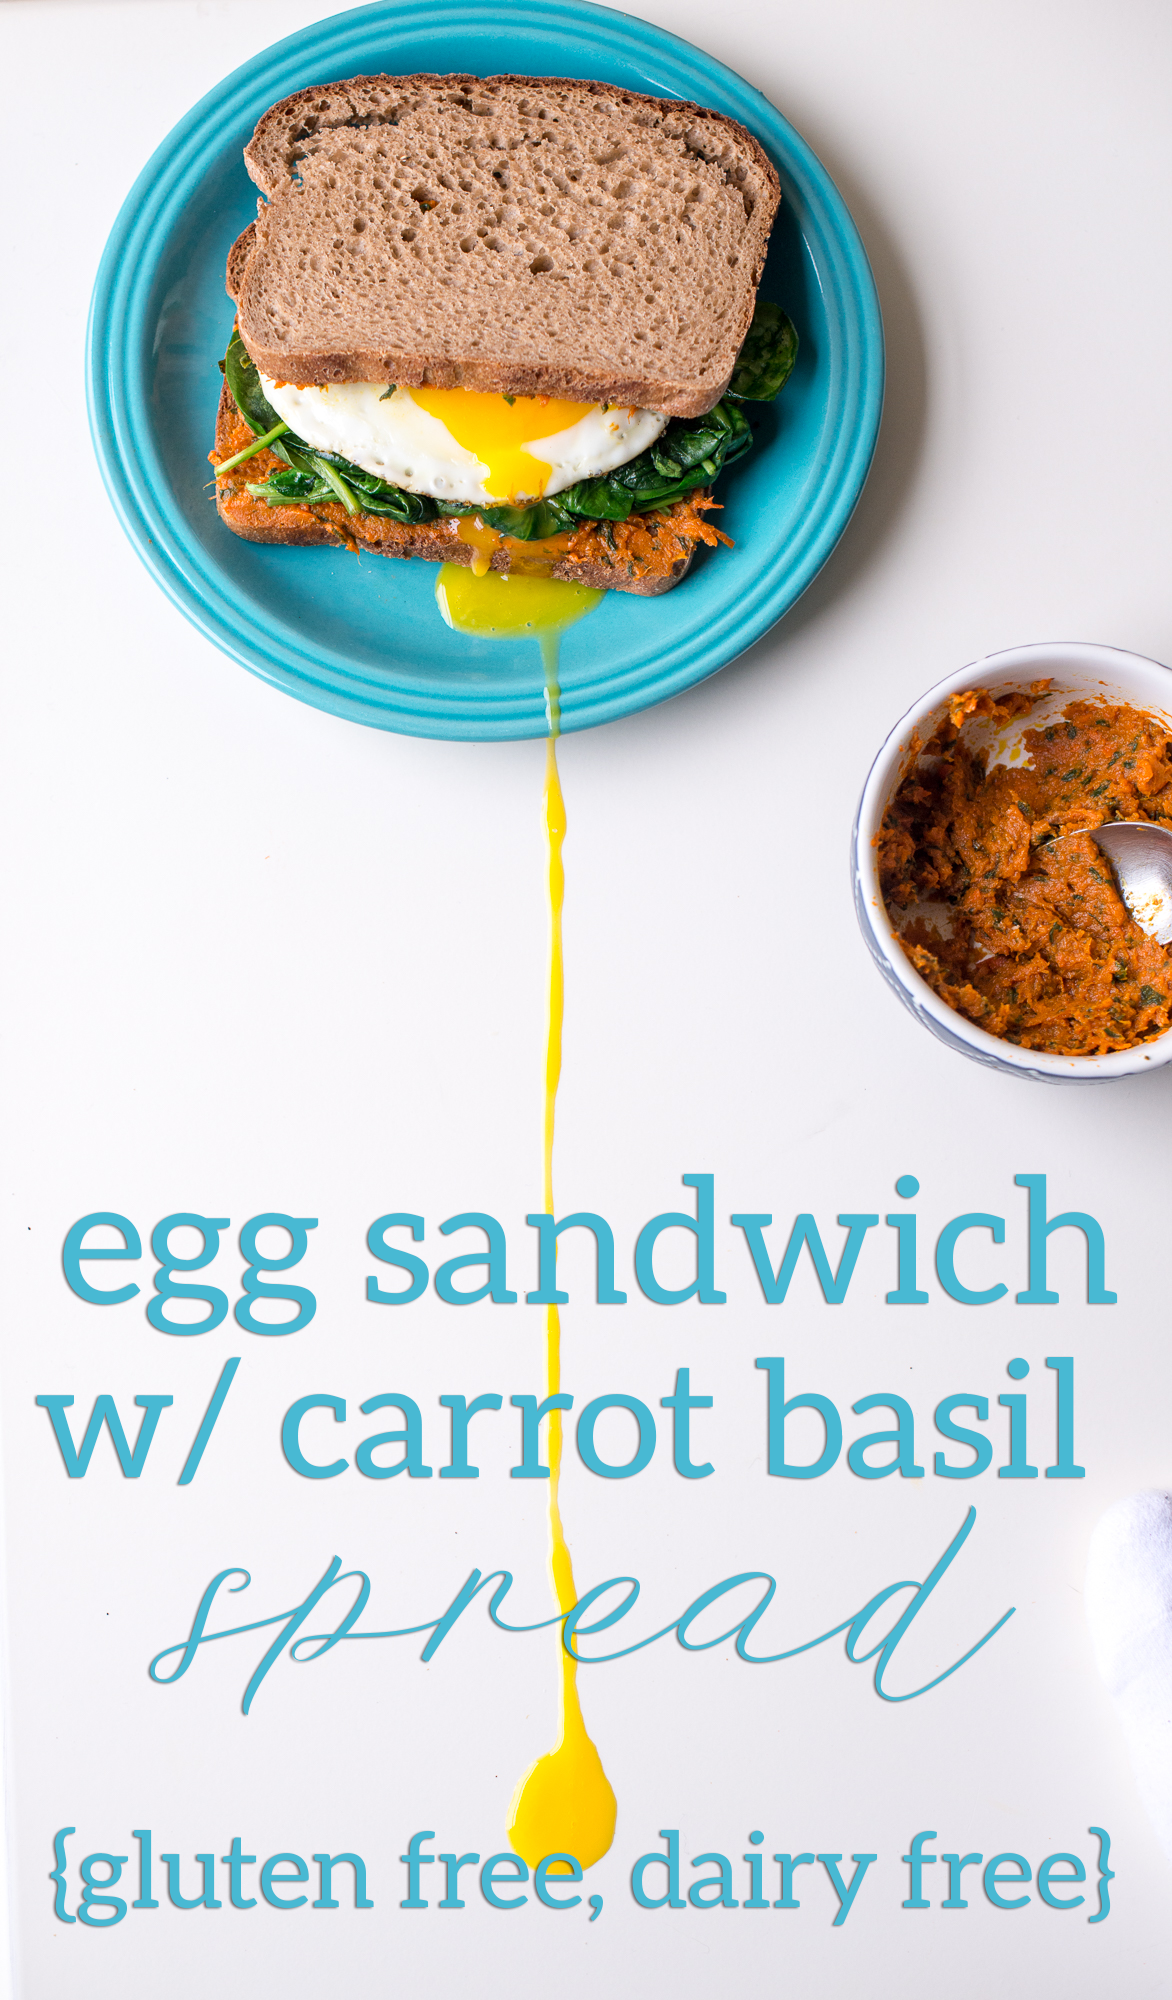 Classic Egg Sandwich with Carrot Basil Spread